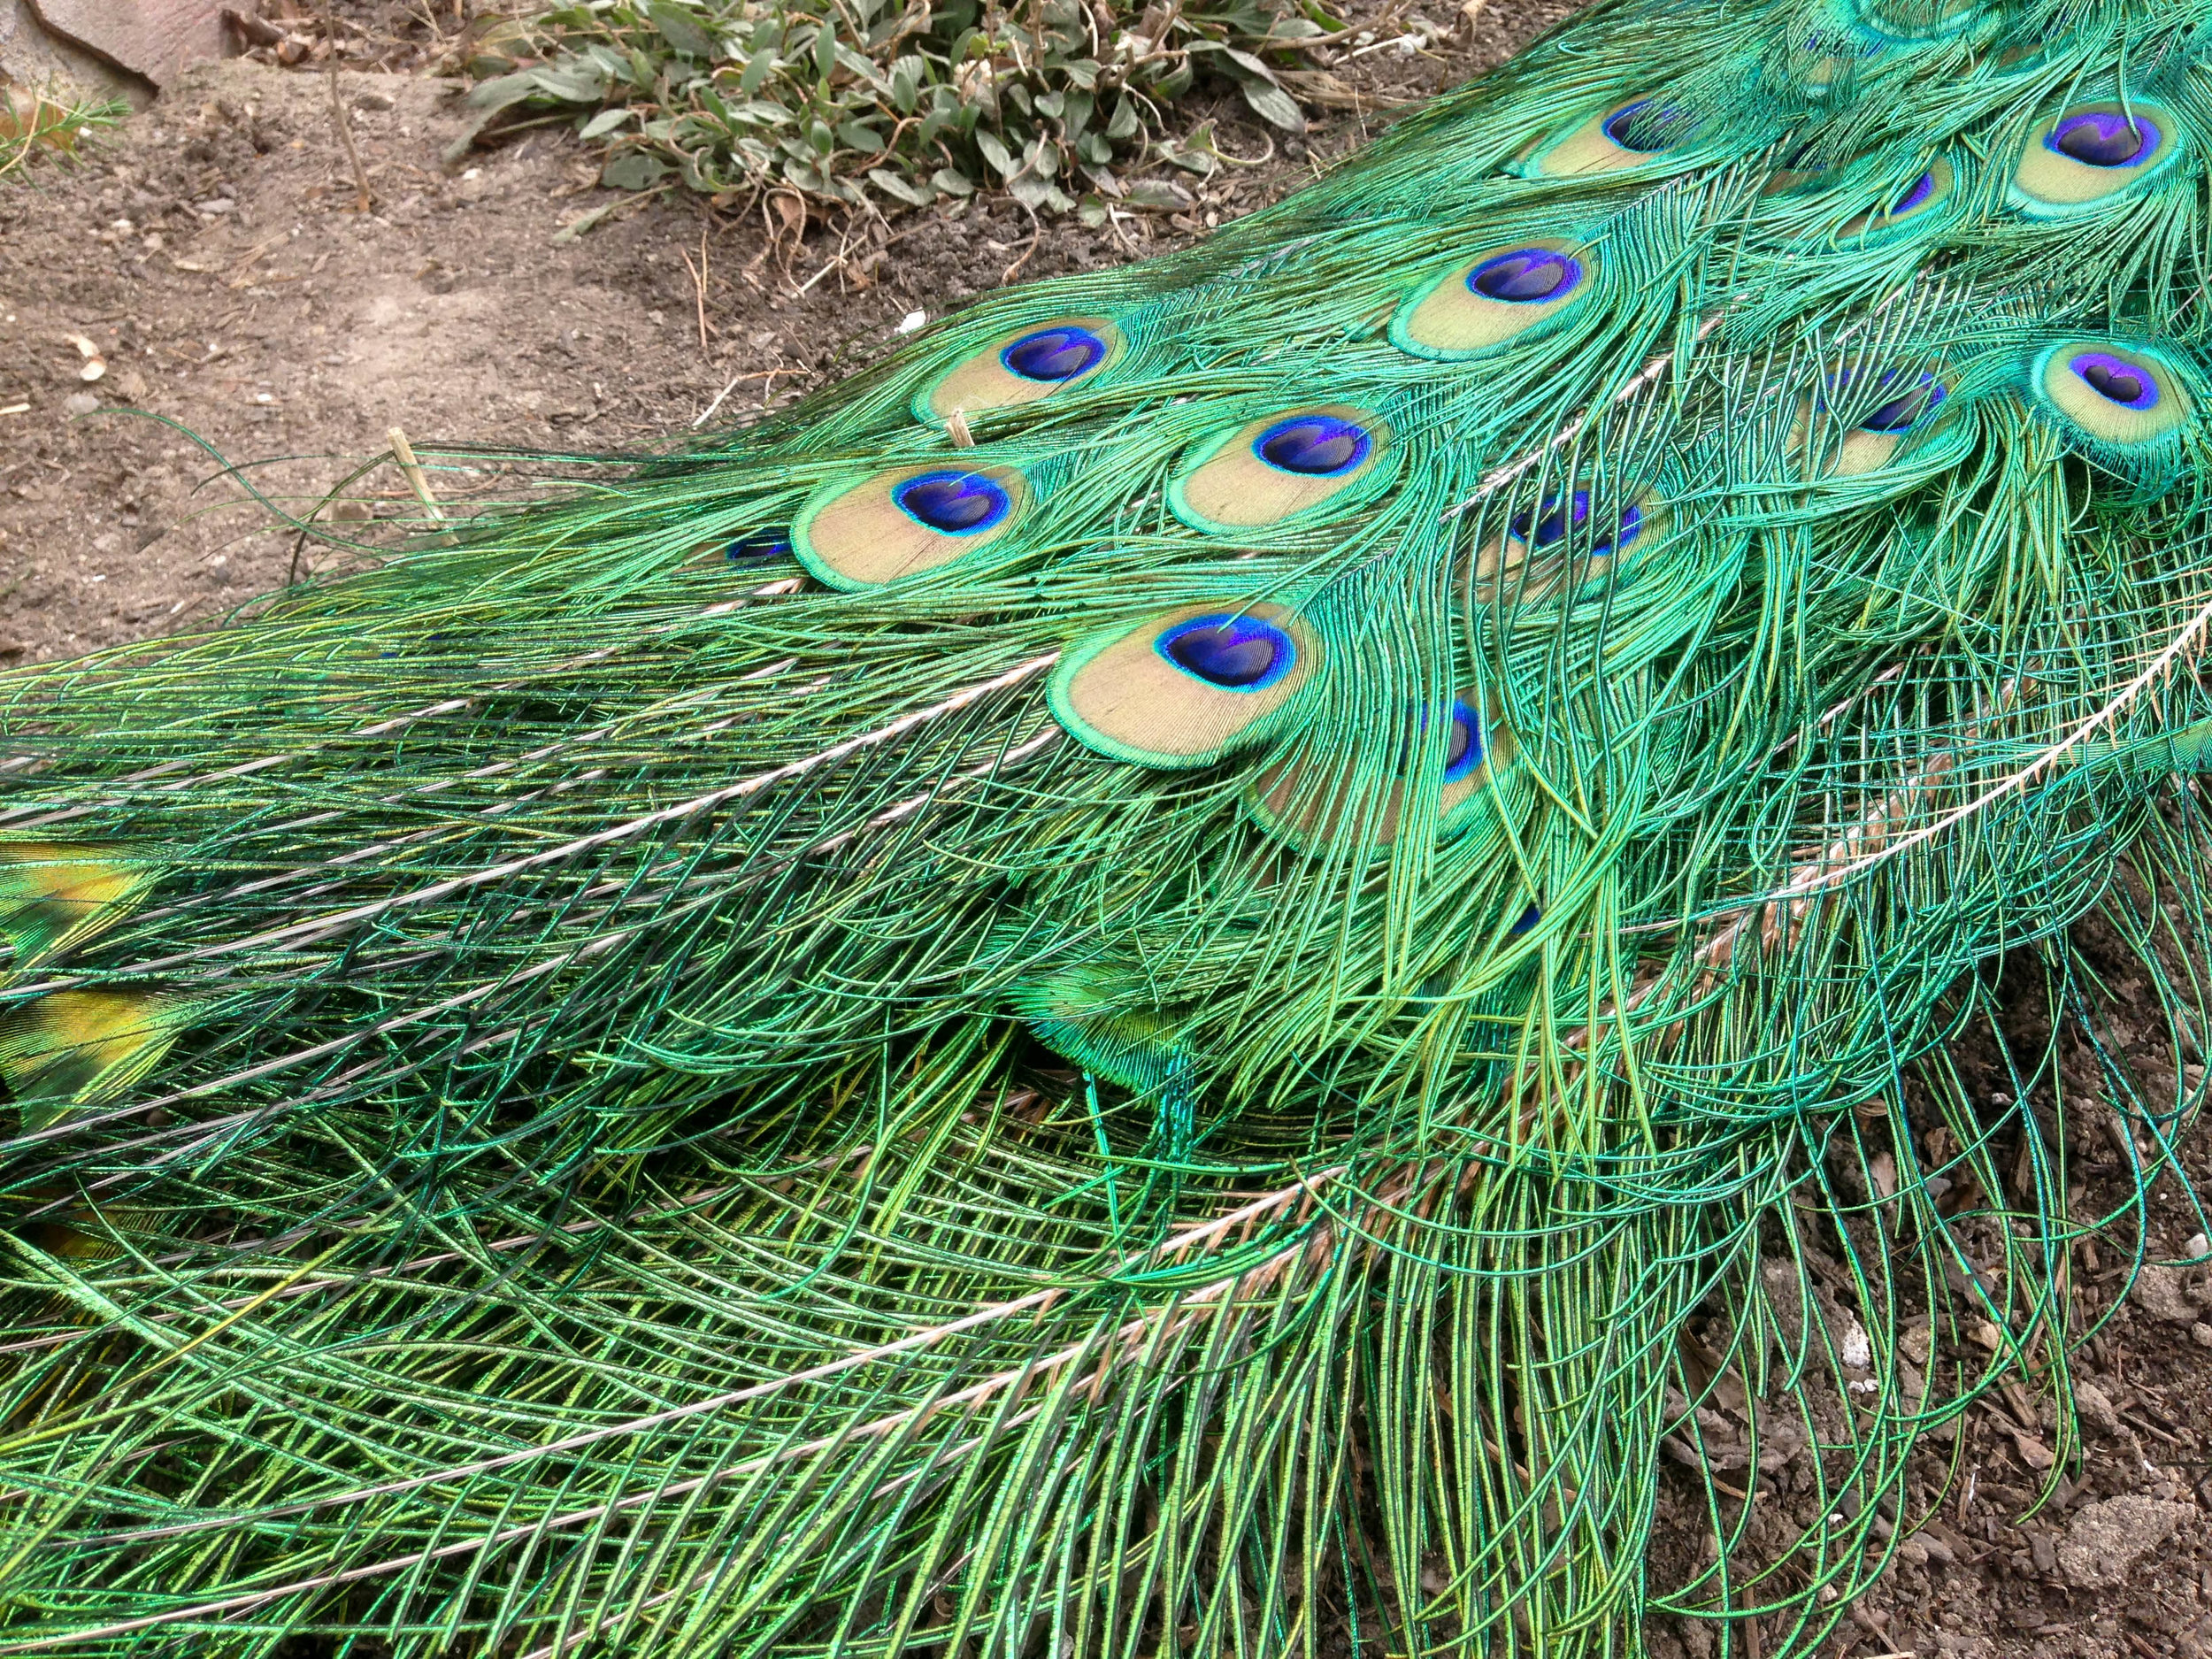 A peacock's tail feathers drag along the ground at Salt Lake City's  Tracy Aviary  in 2015.